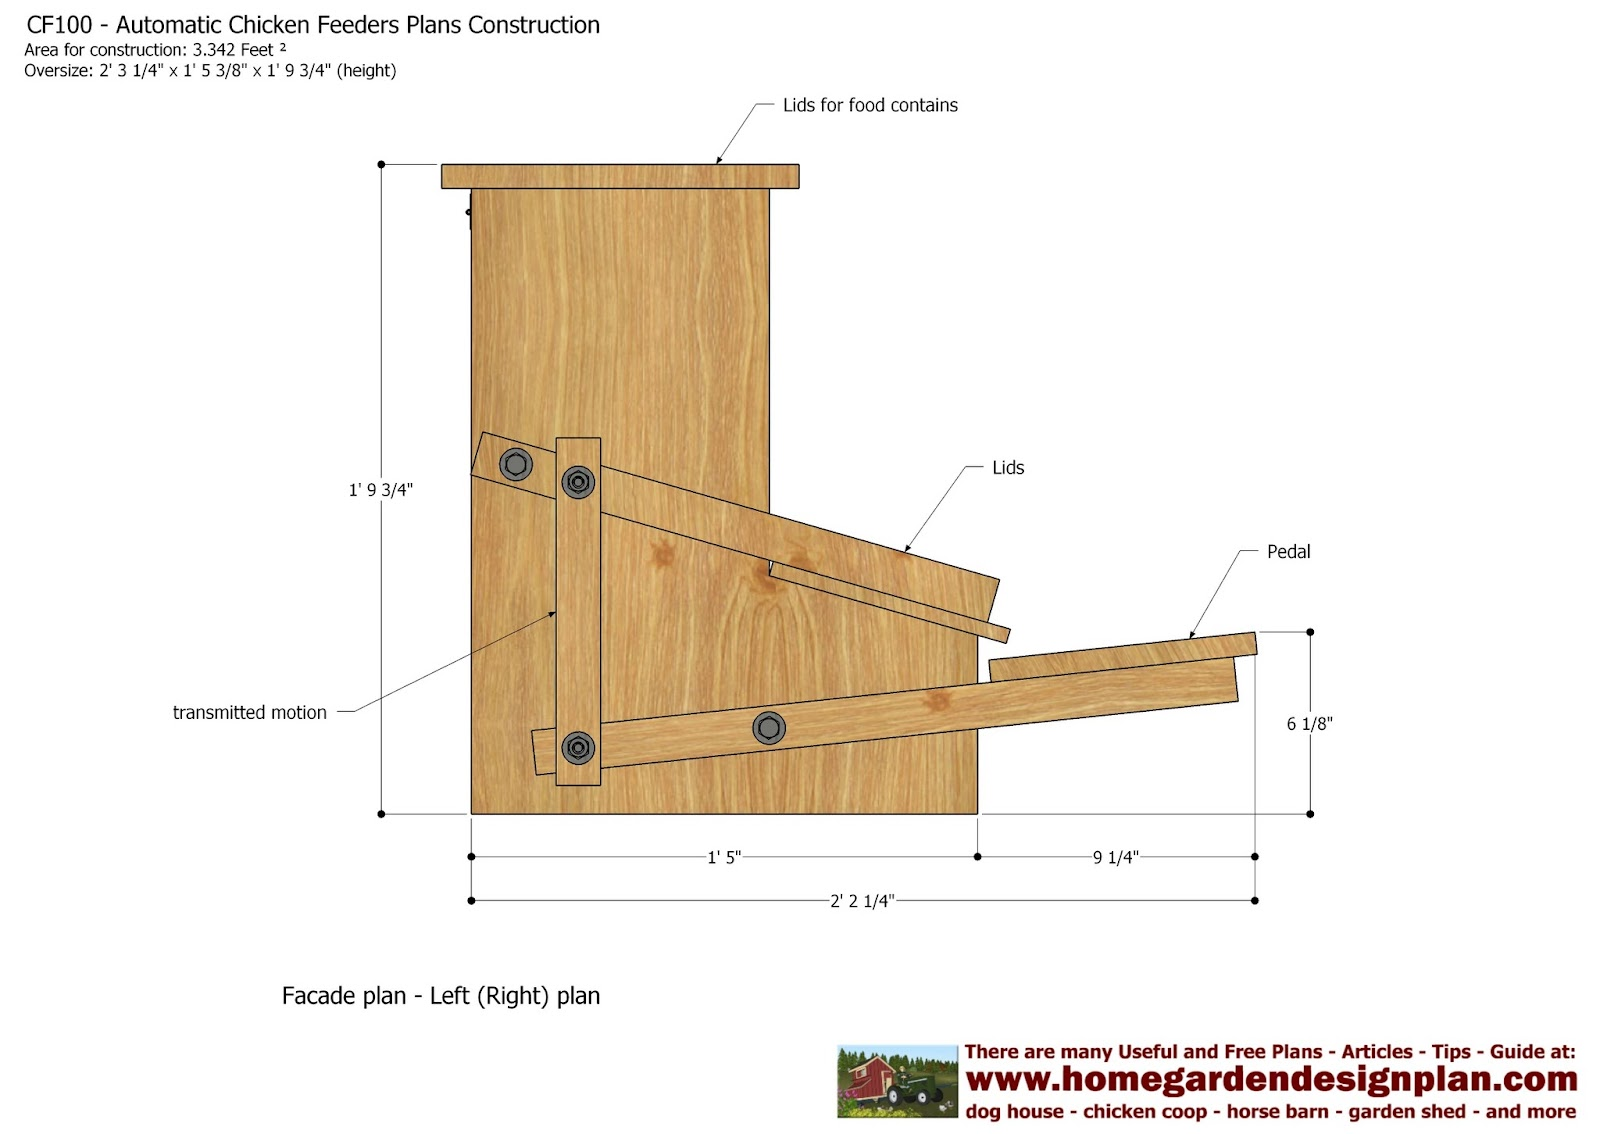 Woodworking Bench Plans Free Plans Free Download likewise 2247 Pdf Plans Hobby Workbench Plans Download Diy How To Build A Above Ground Pool Deck likewise Hummingbird House Plans Free Awesome Custom House Plans Schumacher Homes likewise Victorian Molding Router Bits Plans Diy How To Make besides 110127153362131875. on how to build a wood deer feeder plans free download